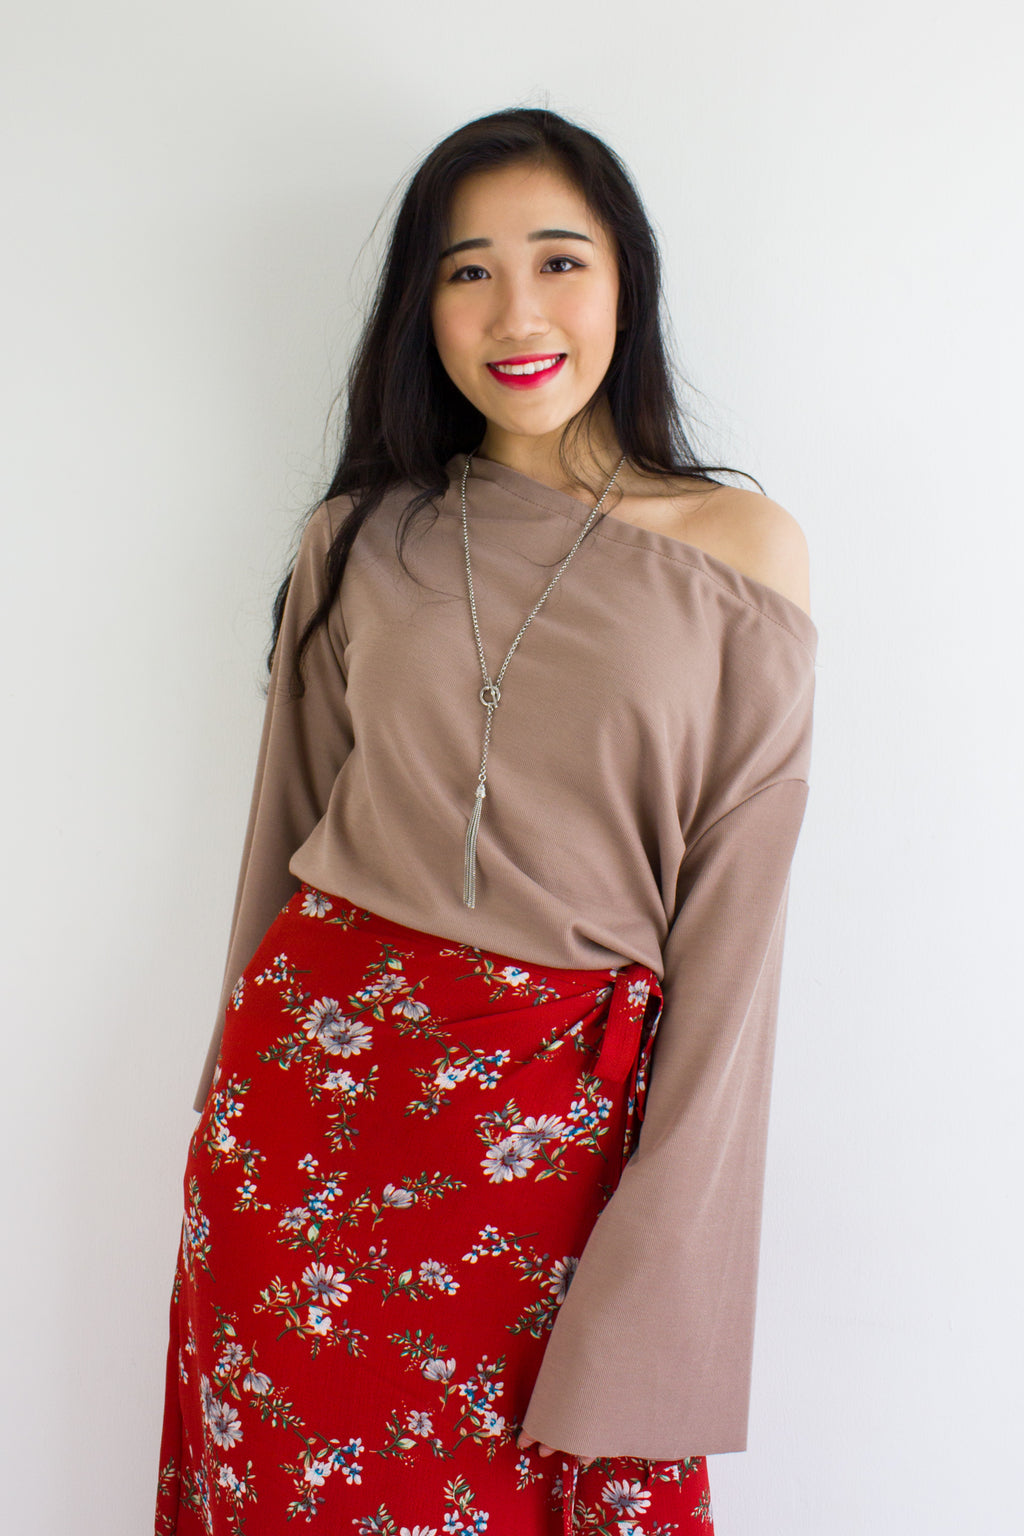 So Cozy Bell Sleeves Top in Chocolate - TOPS - Peep Boutique